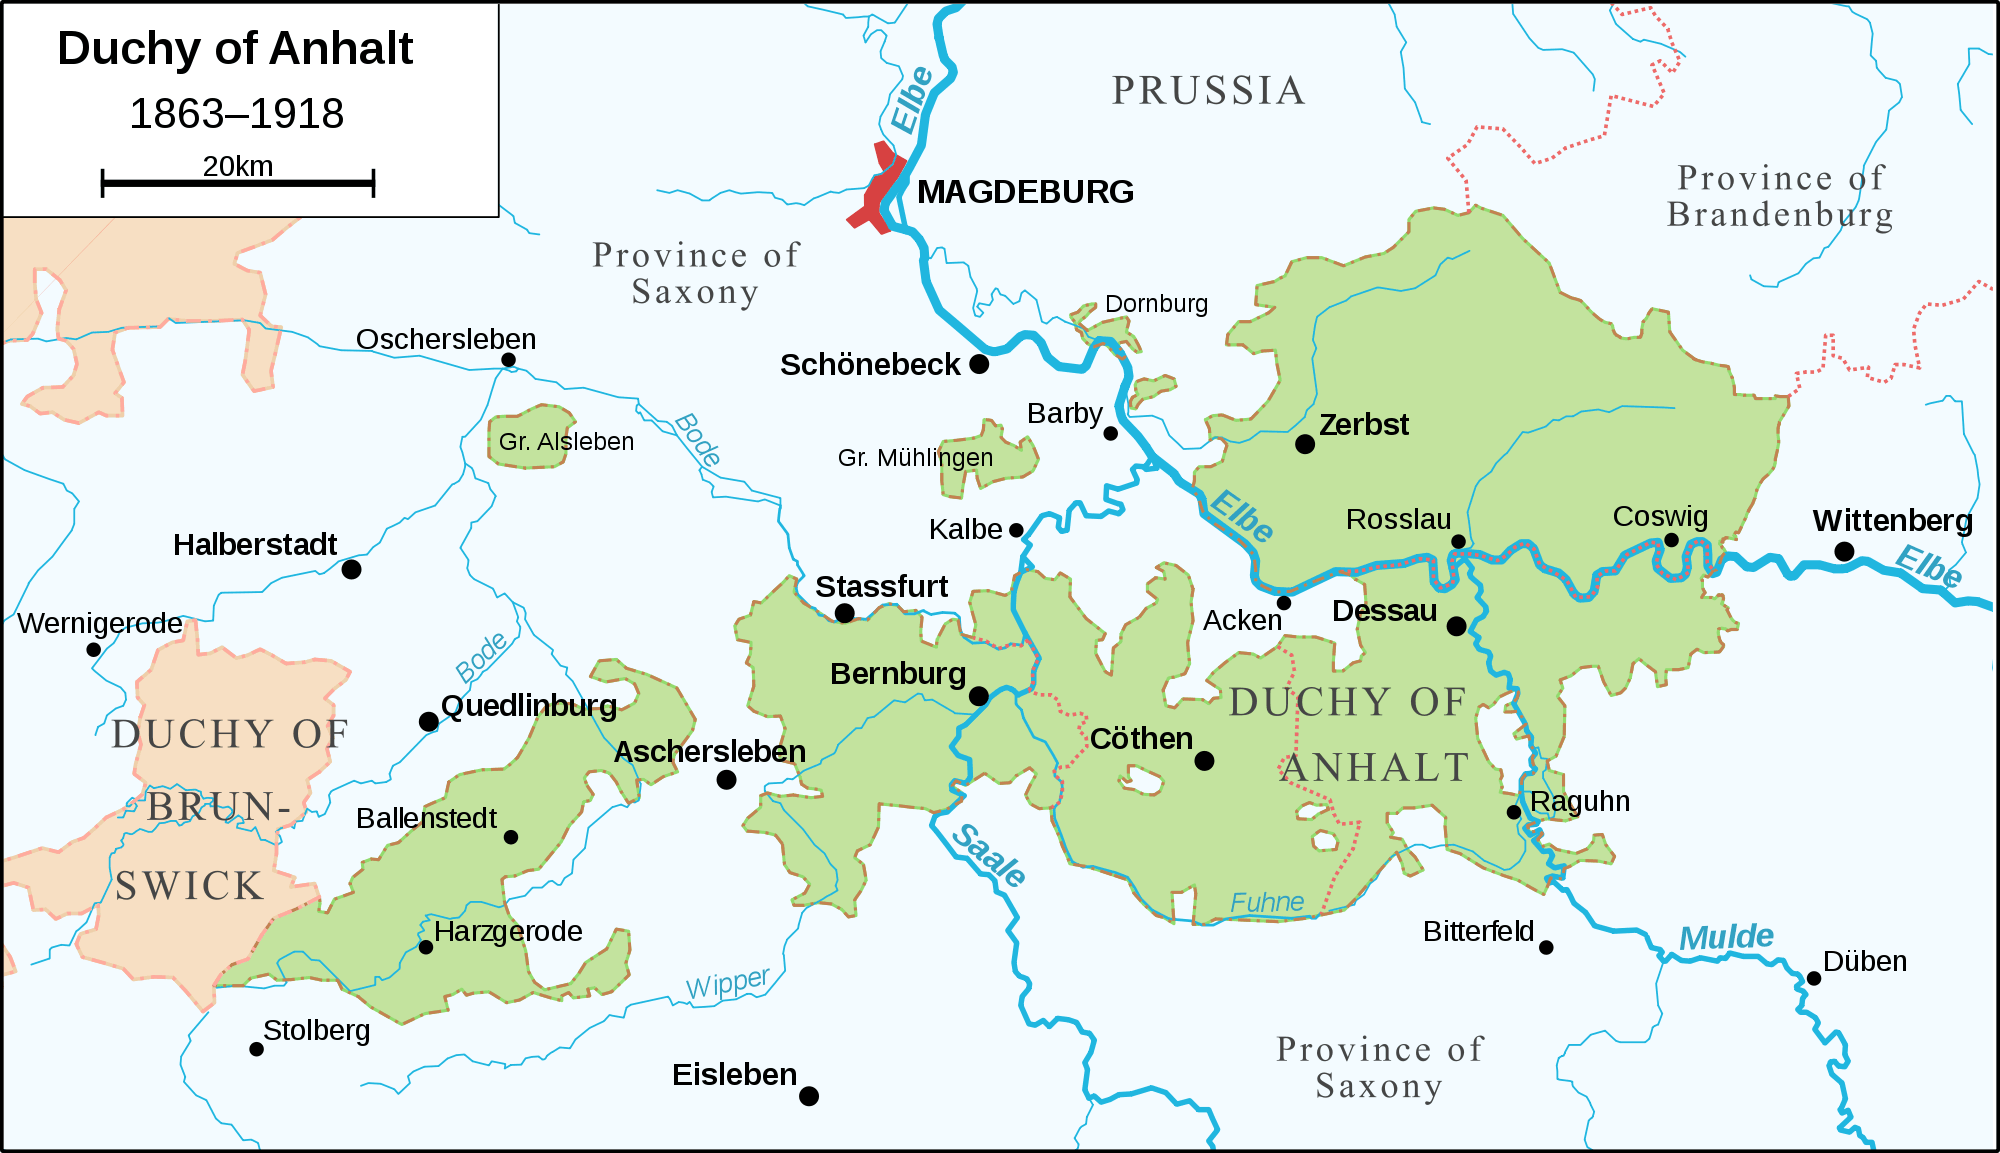 Map Of Germany In 1918.Duchy Of Anhalt 1863 1918 Mapsof Net